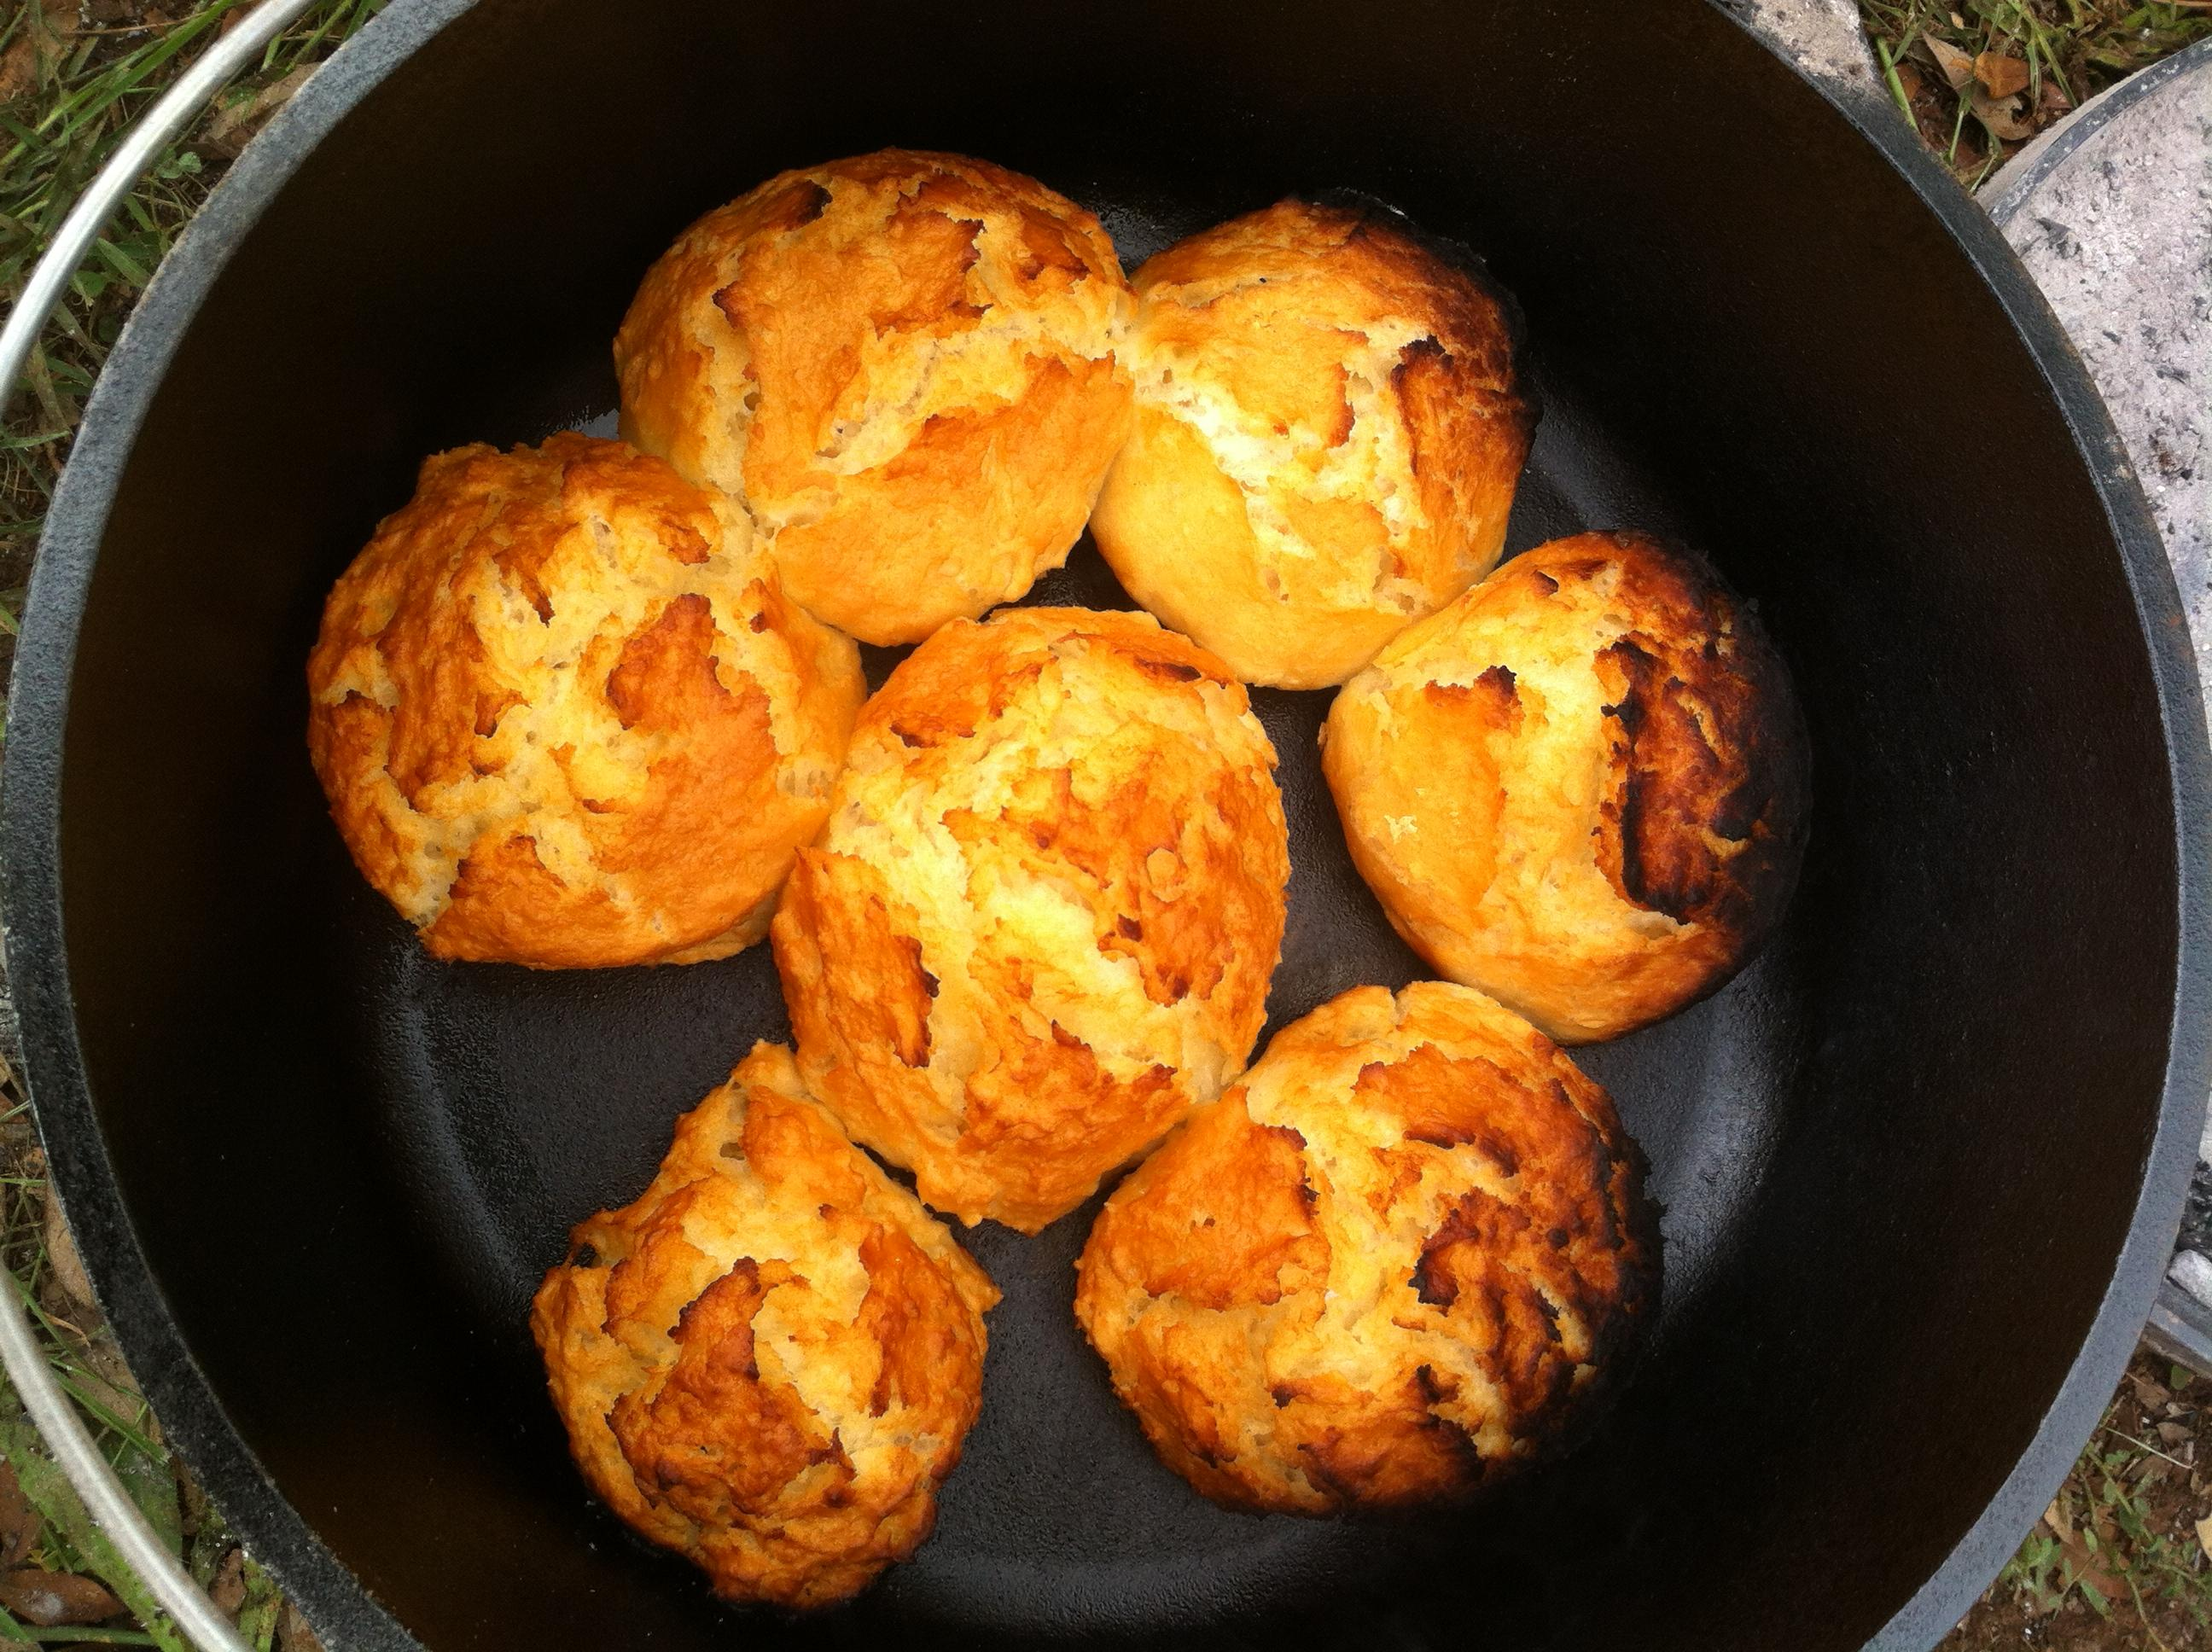 Campfire Dutch Oven Biscuits Ryan Boren